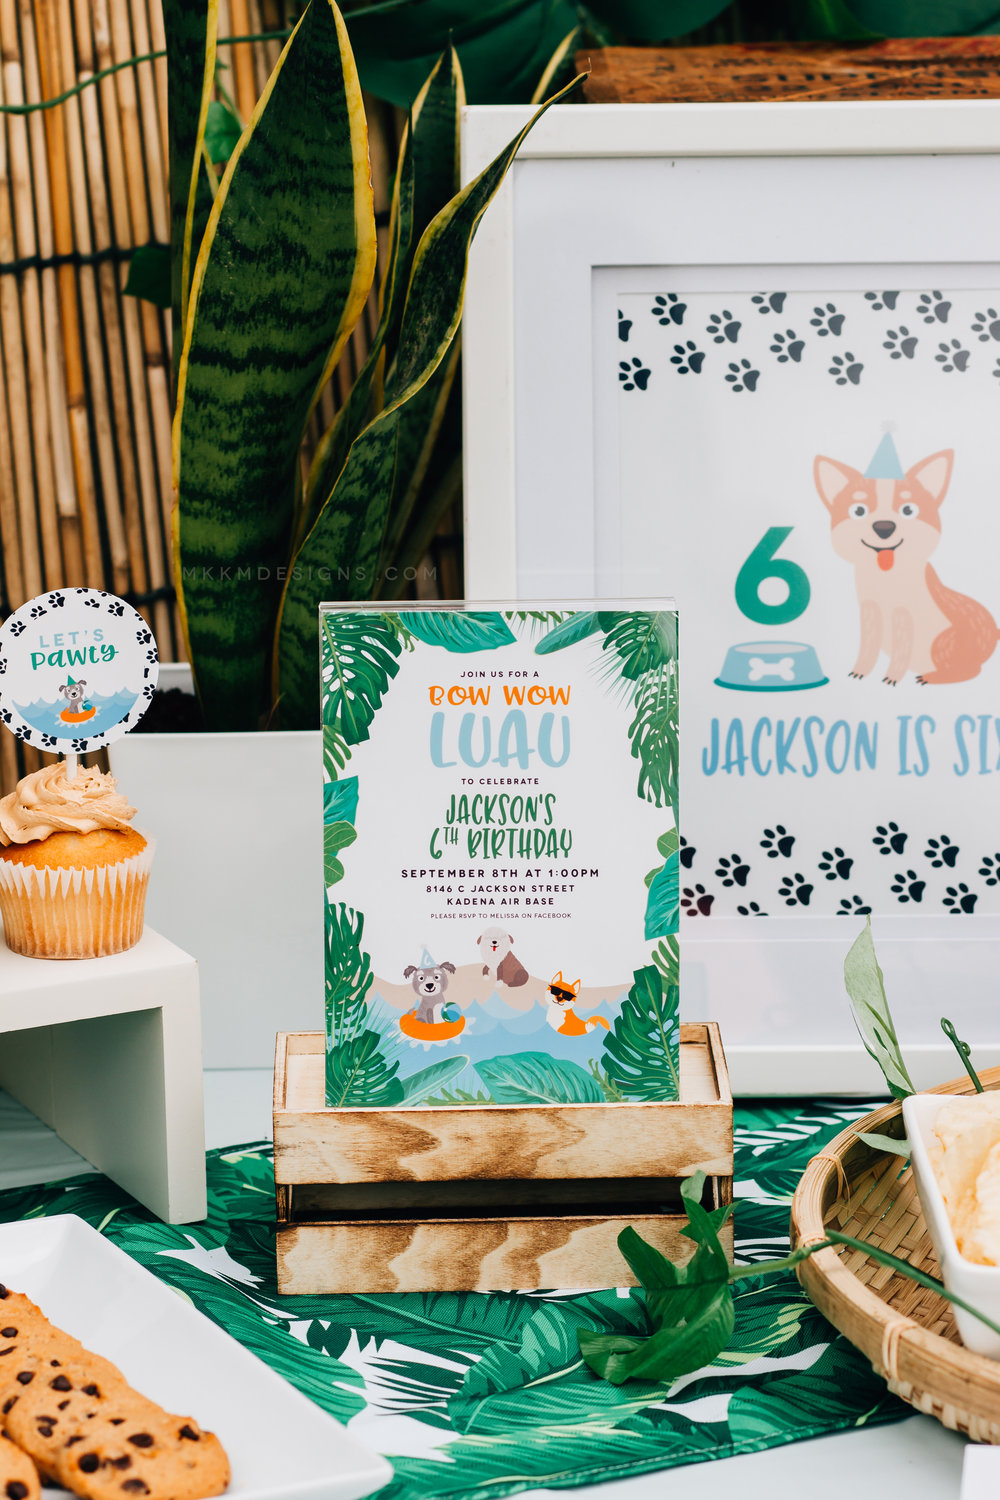 Bow Wow Luau invitation from a puppy birthday party. Designs by MKKM Designs.